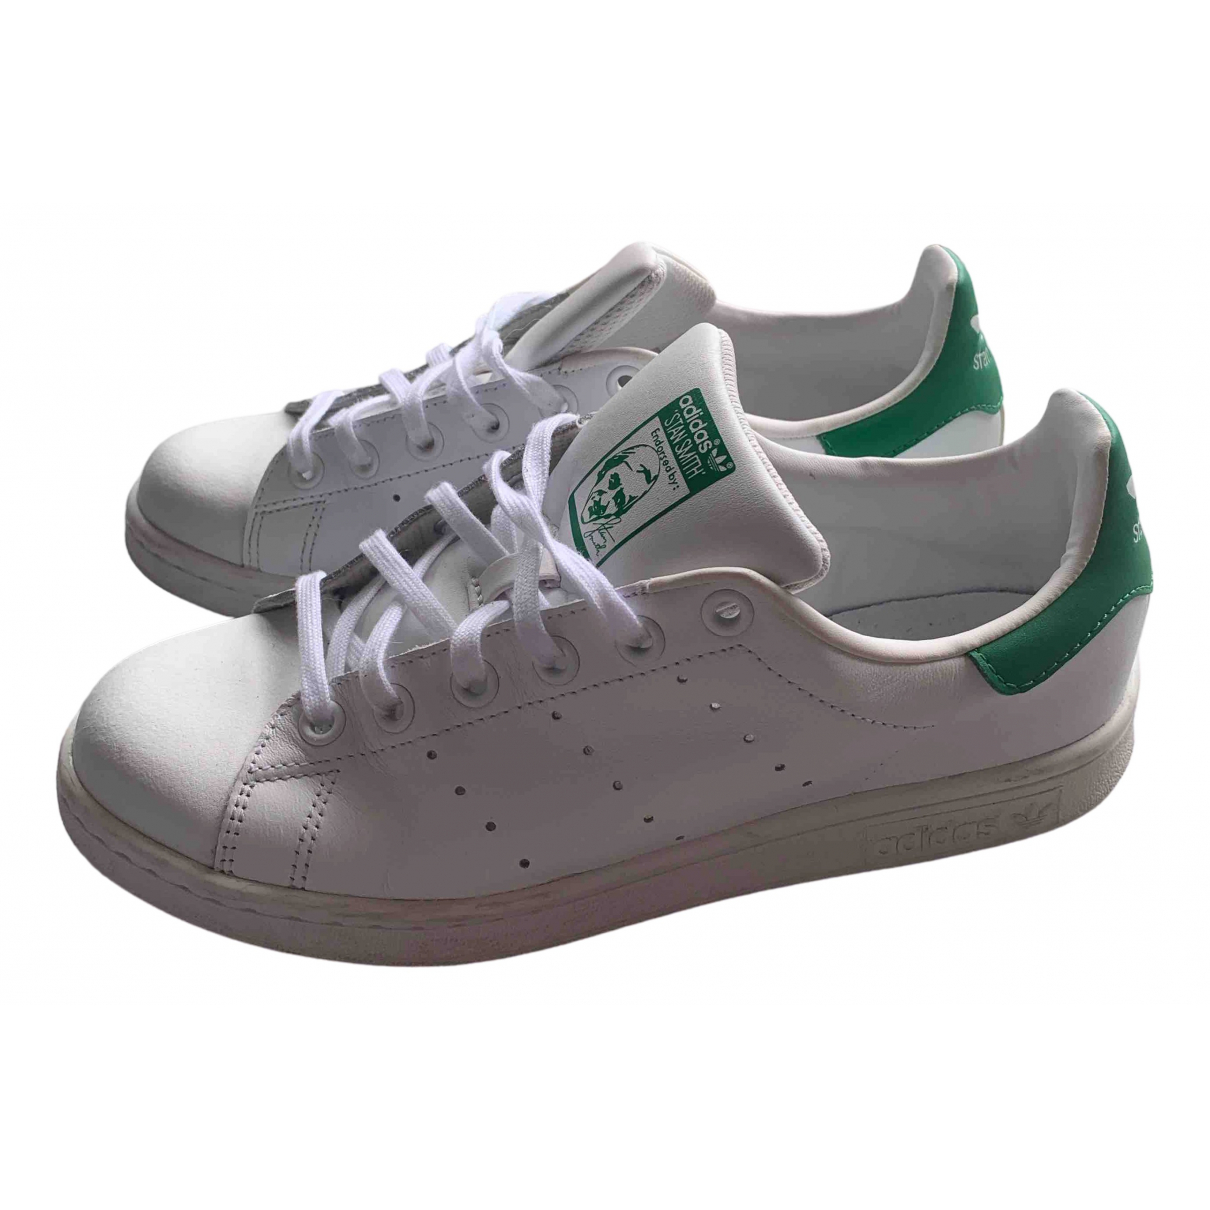 Adidas Stan Smith Green Leather Trainers for Women 6 US